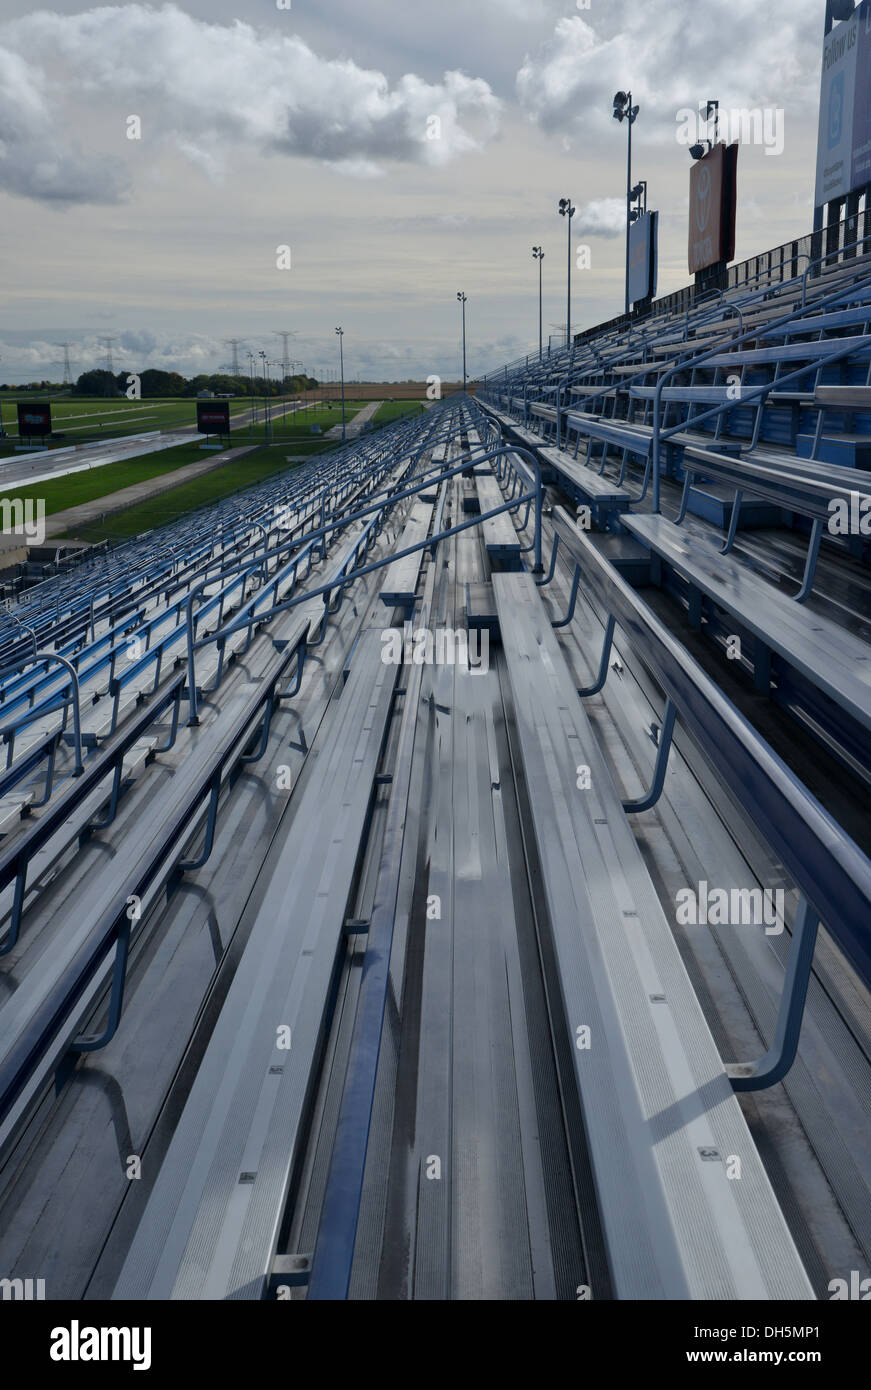 Grandstand seating at Route 66 Raceway car race track, Elwood, Illinois - Stock Image